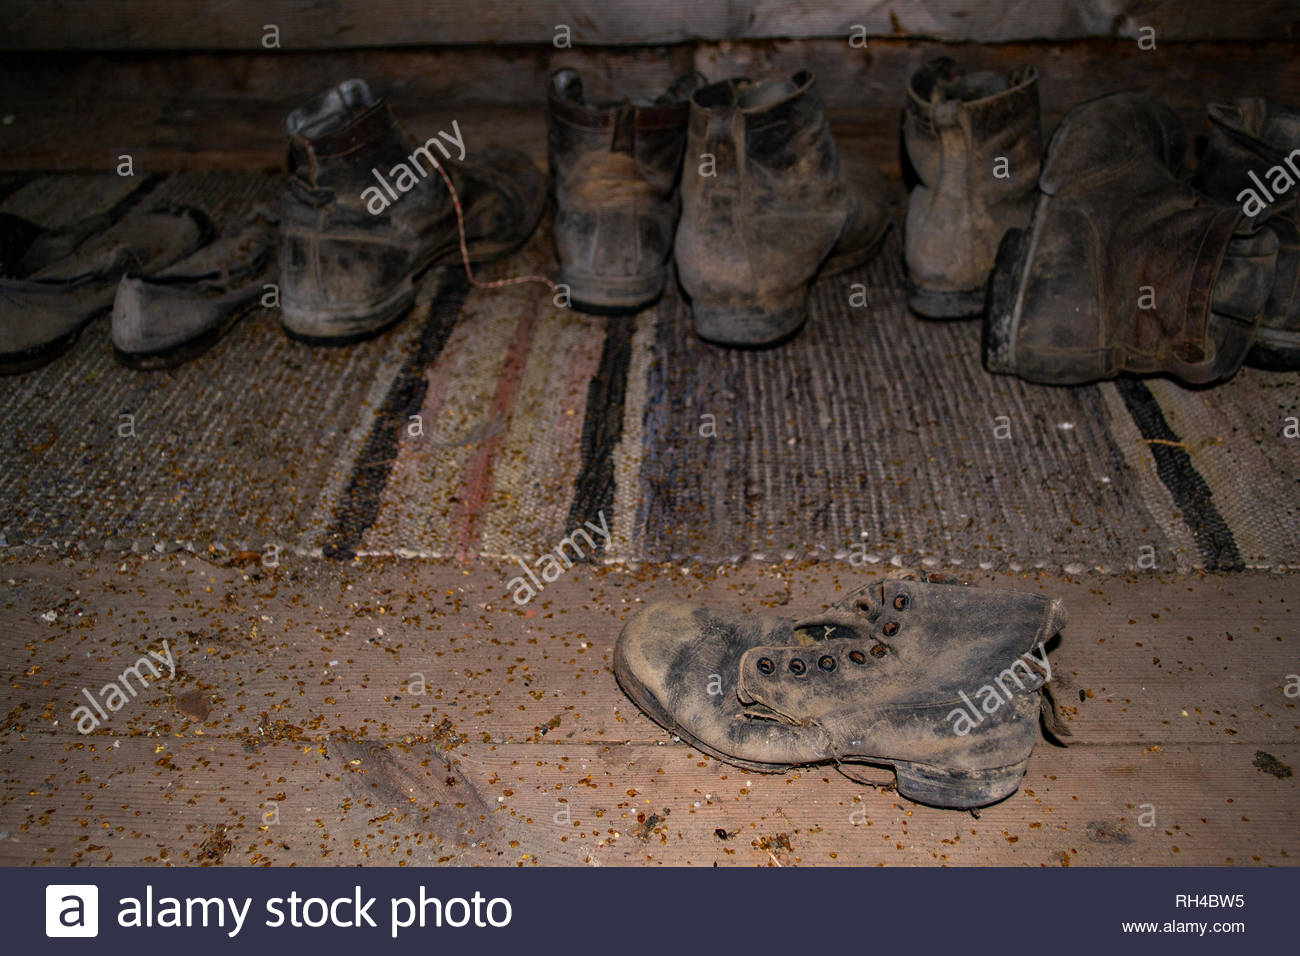 Closeup of old vintage shoes and leather boots in a wooden farm house attic. Selective focus on one leather boot in the front, blurred background. - Stock Image